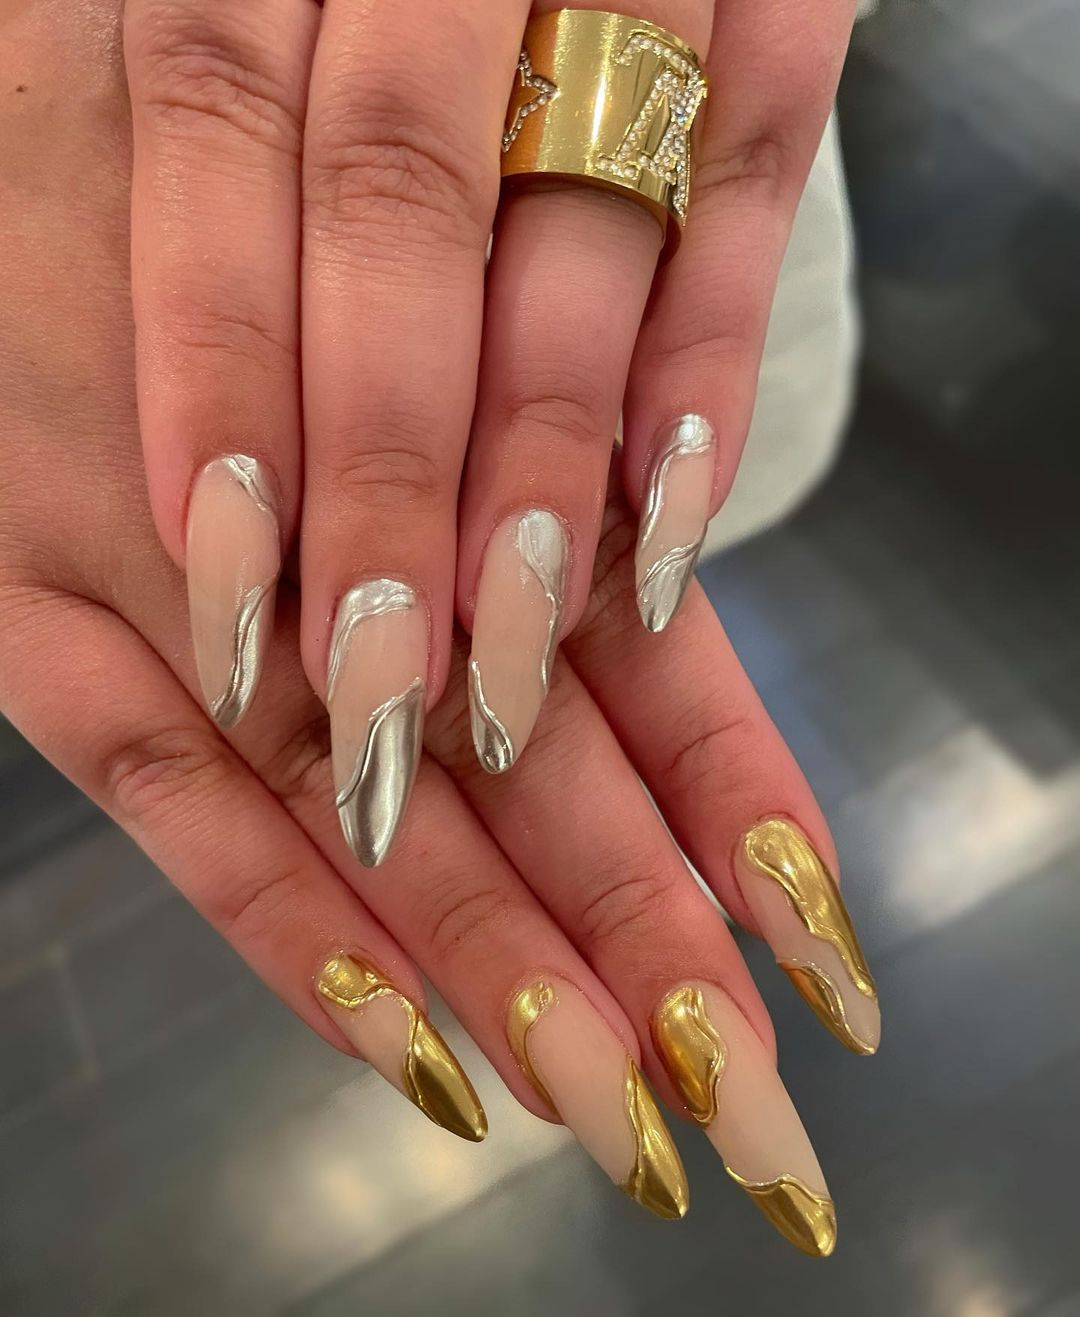 Molten silver and gold nails